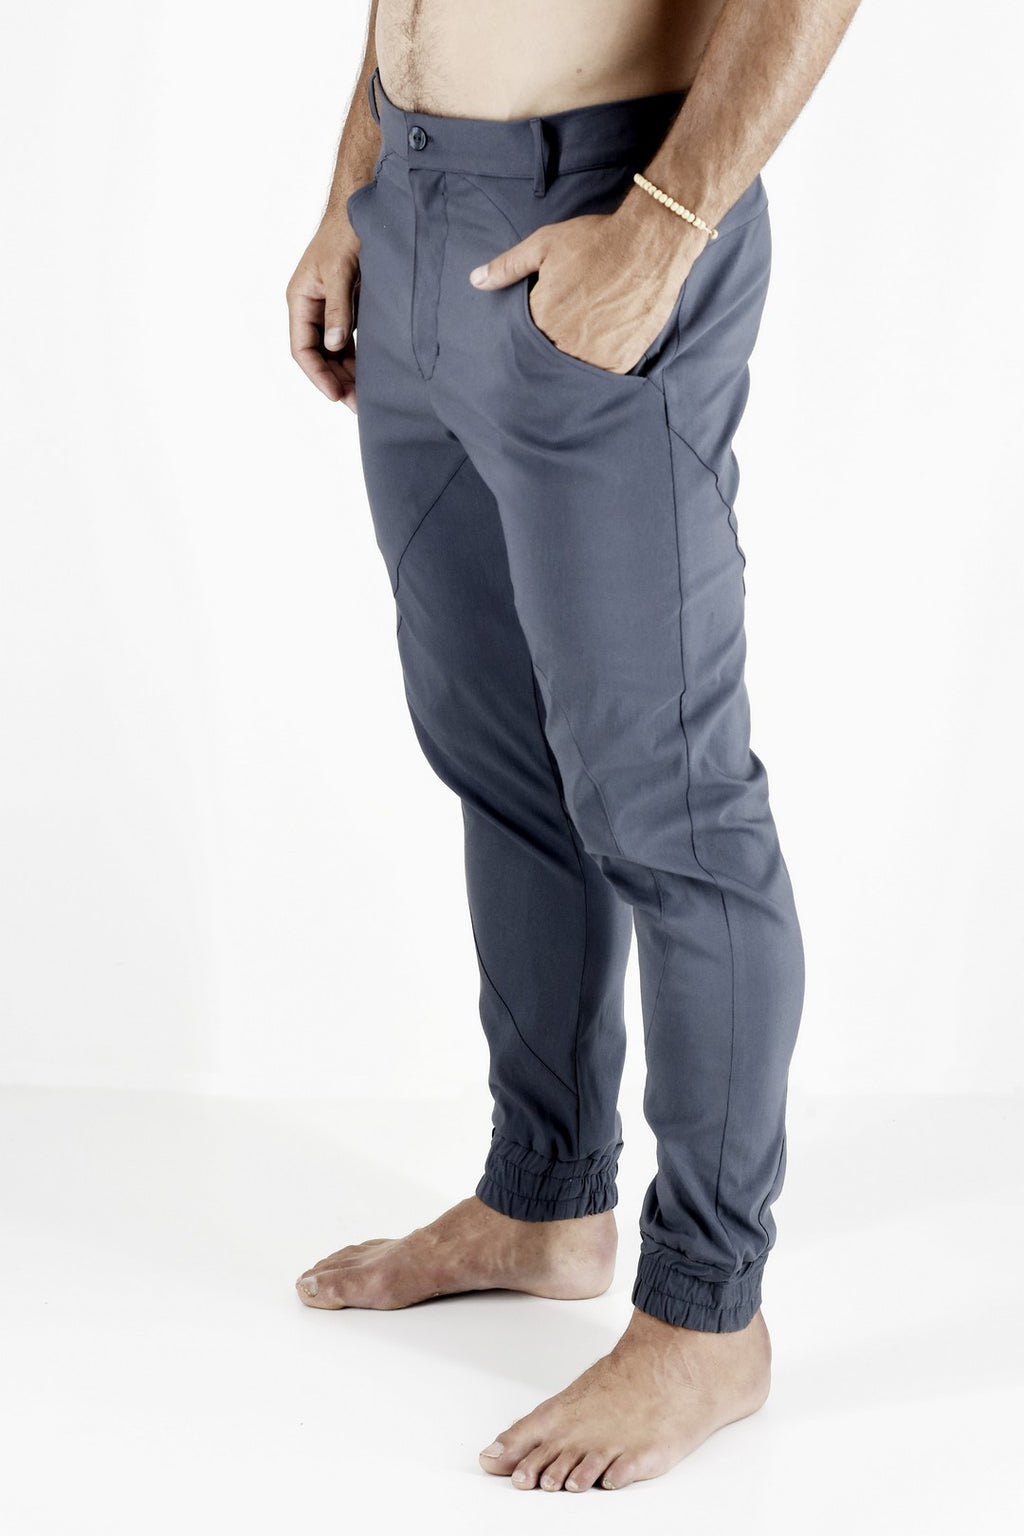 Mens Pants Grey with Pocket Detail and Elasticated Cuff ZG5181